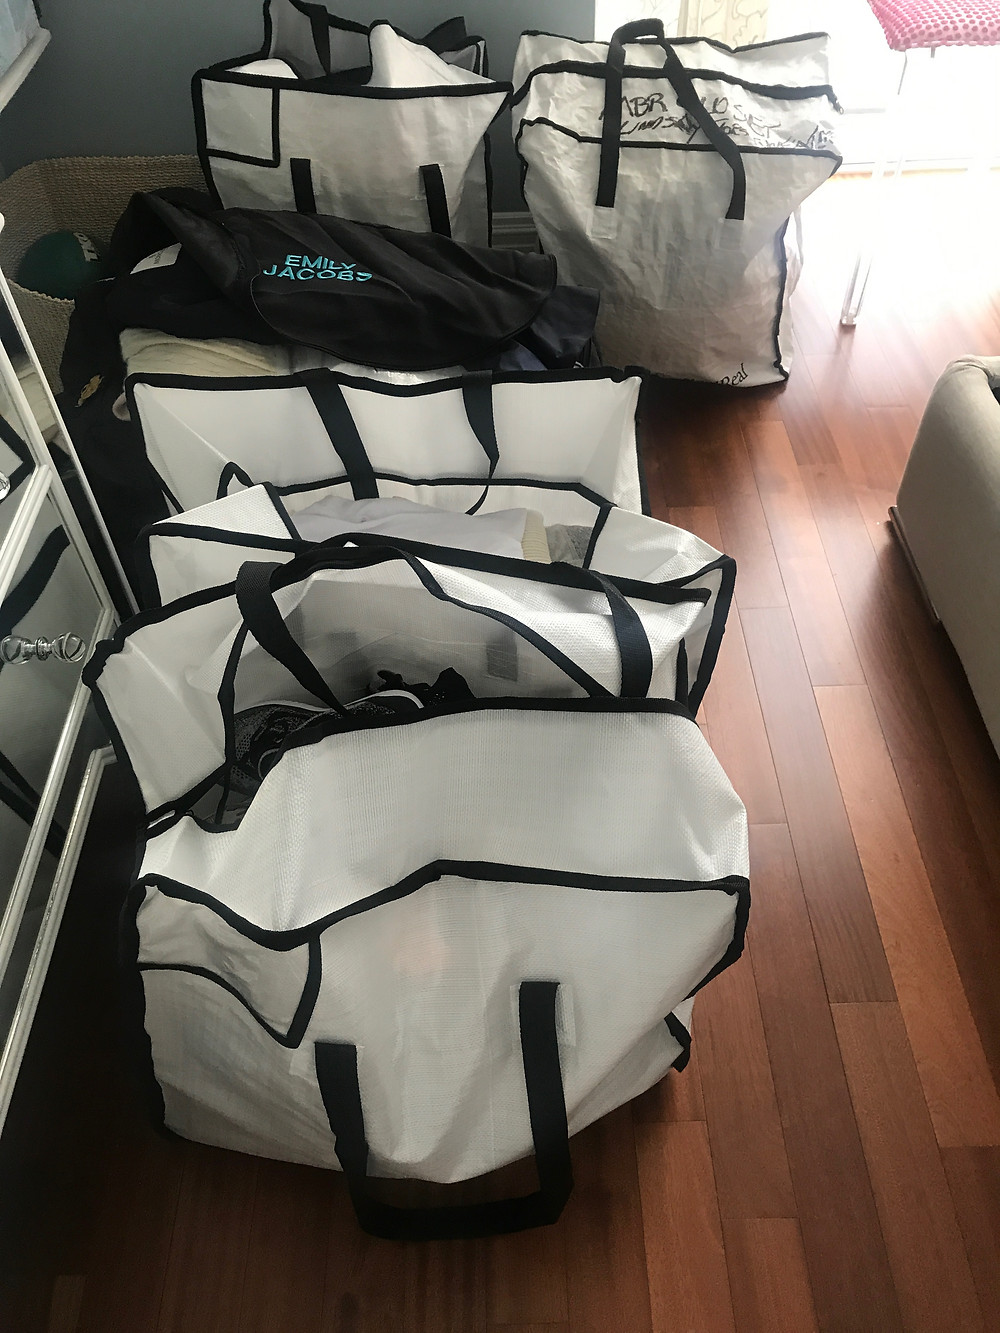 bags filled with items to purge